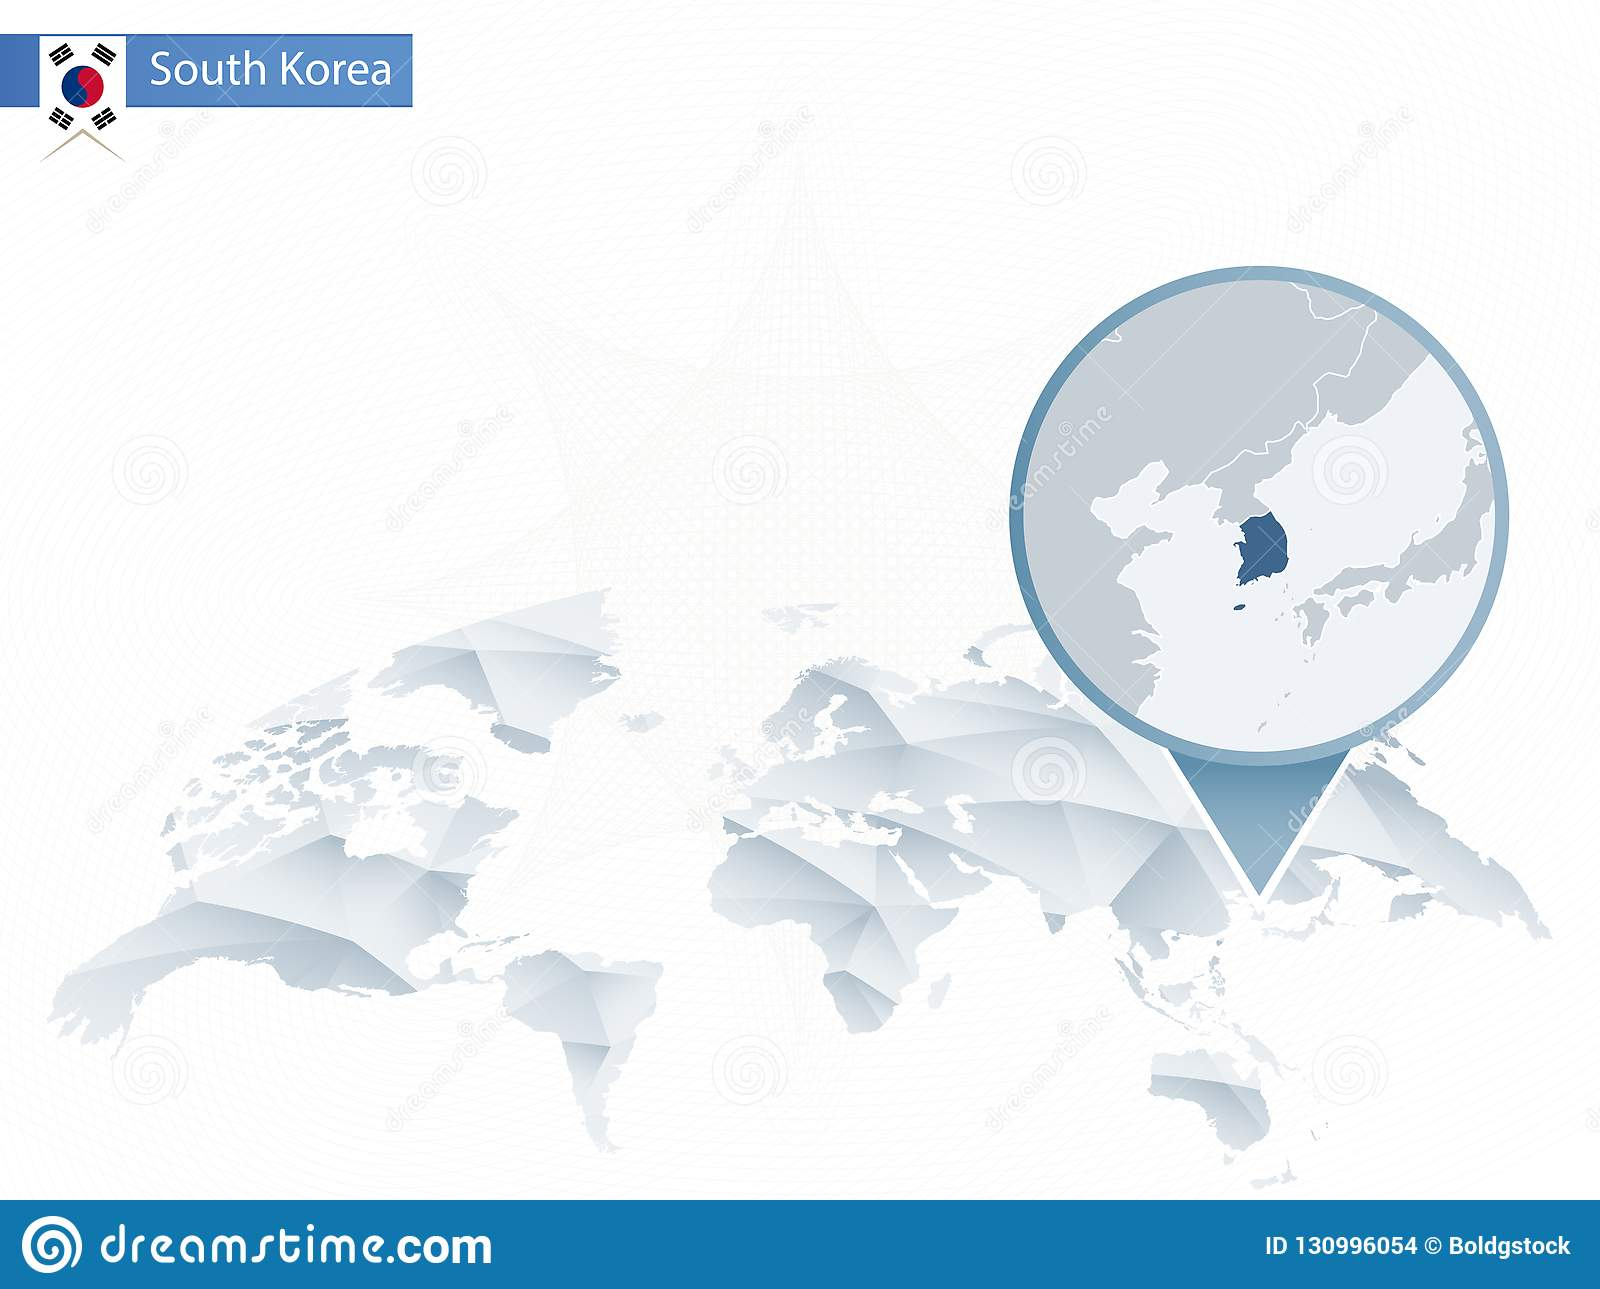 South Korea In World Map.Abstract Rounded World Map With Pinned Detailed South Korea Map